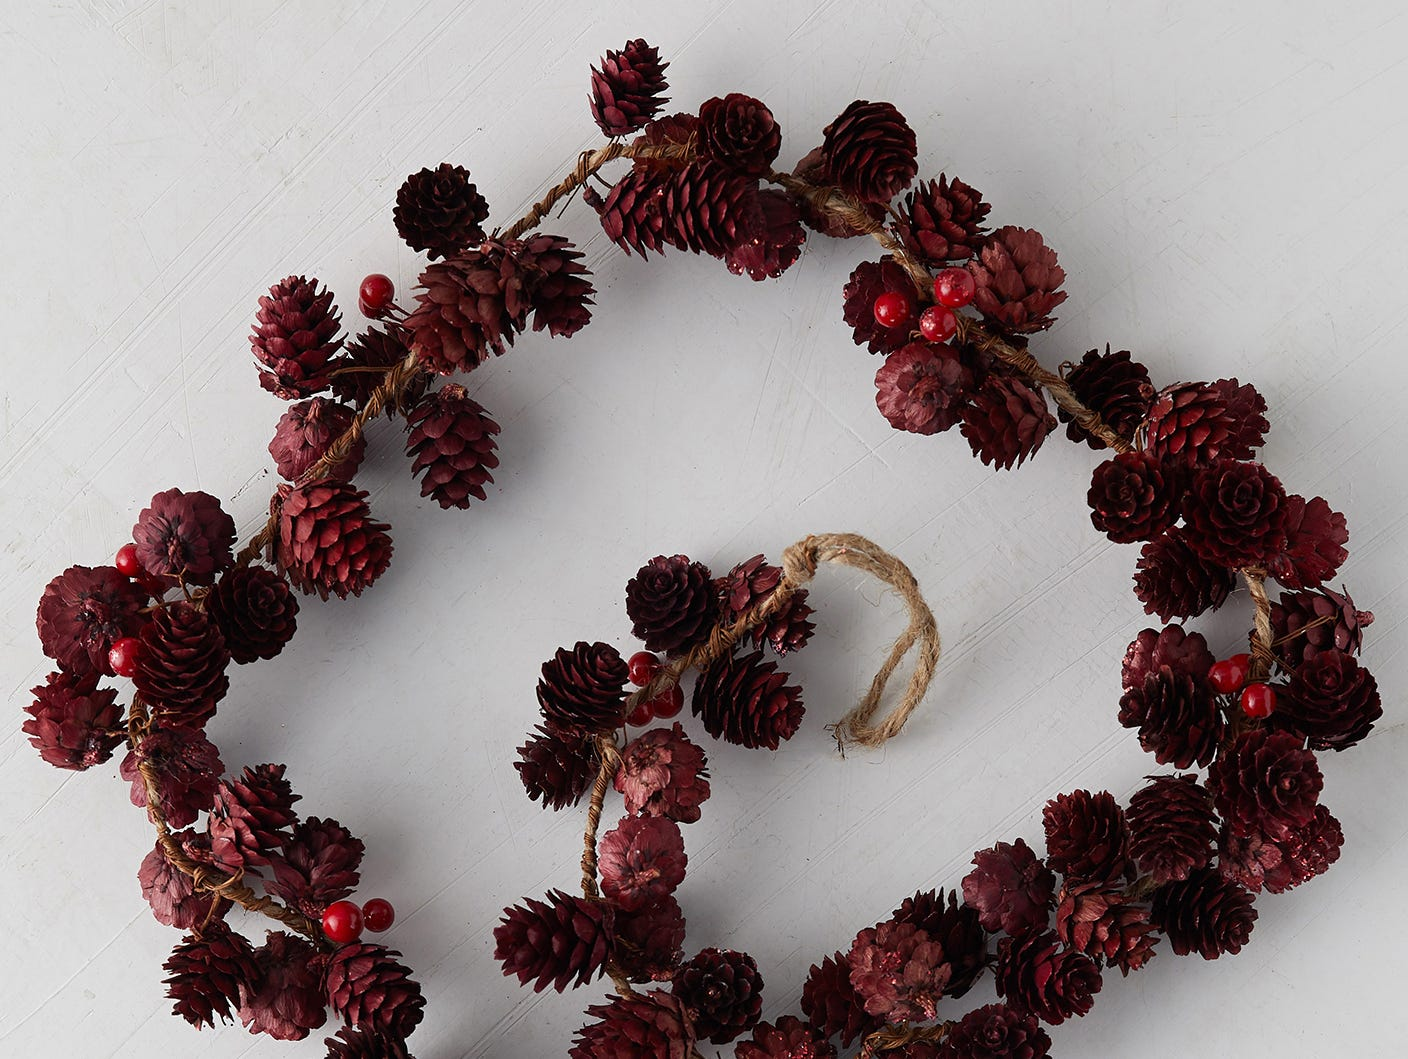 Pine cones in shades of garnet, punctuated with red berries, add nuanced color and texture wherever you choose to place this garland from Anthropologie.